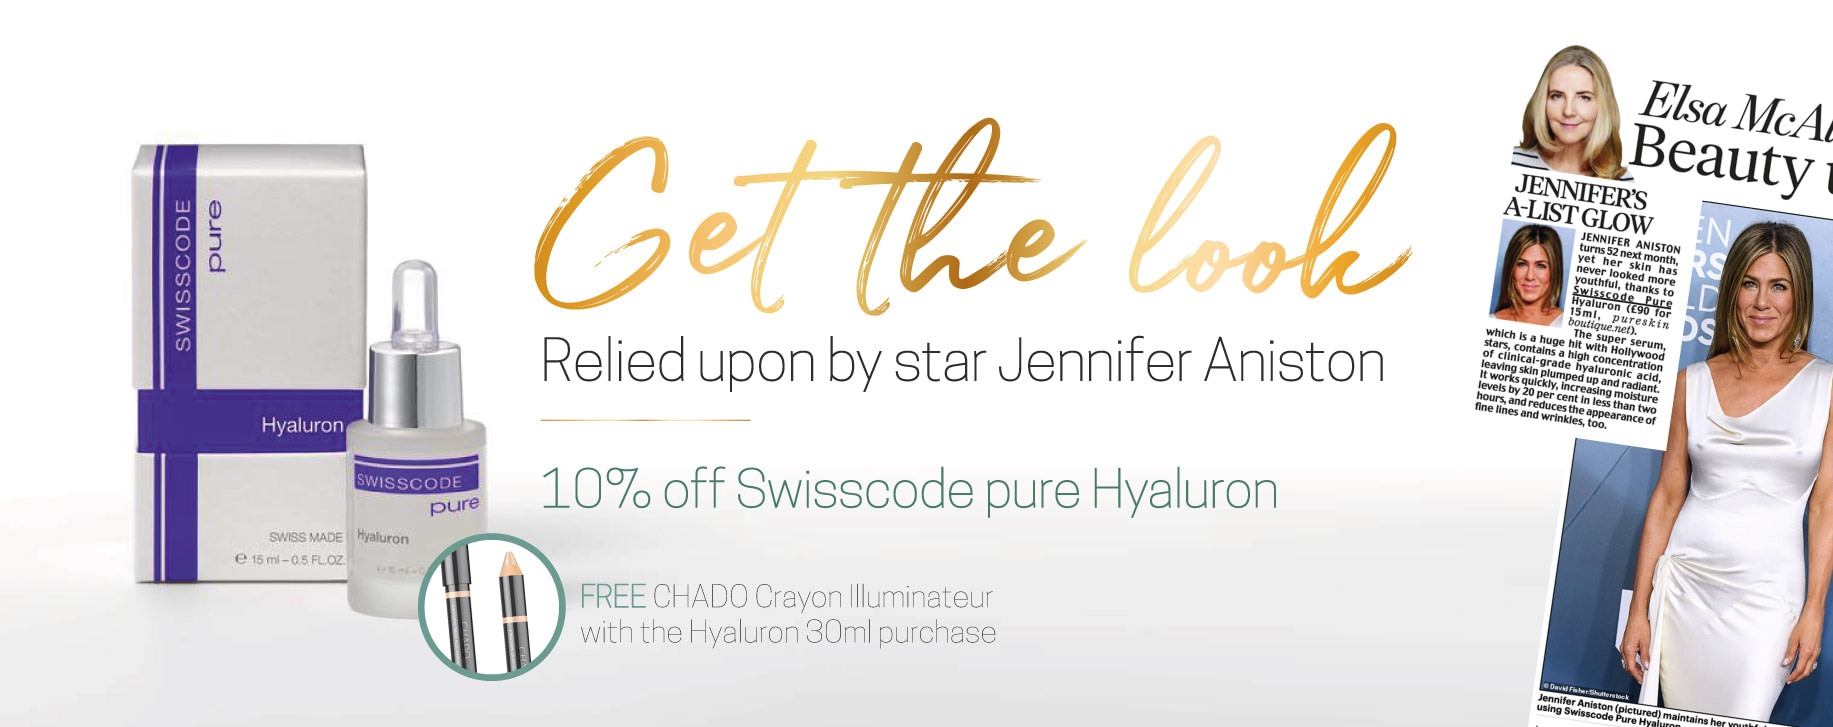 Hyaluron promotion